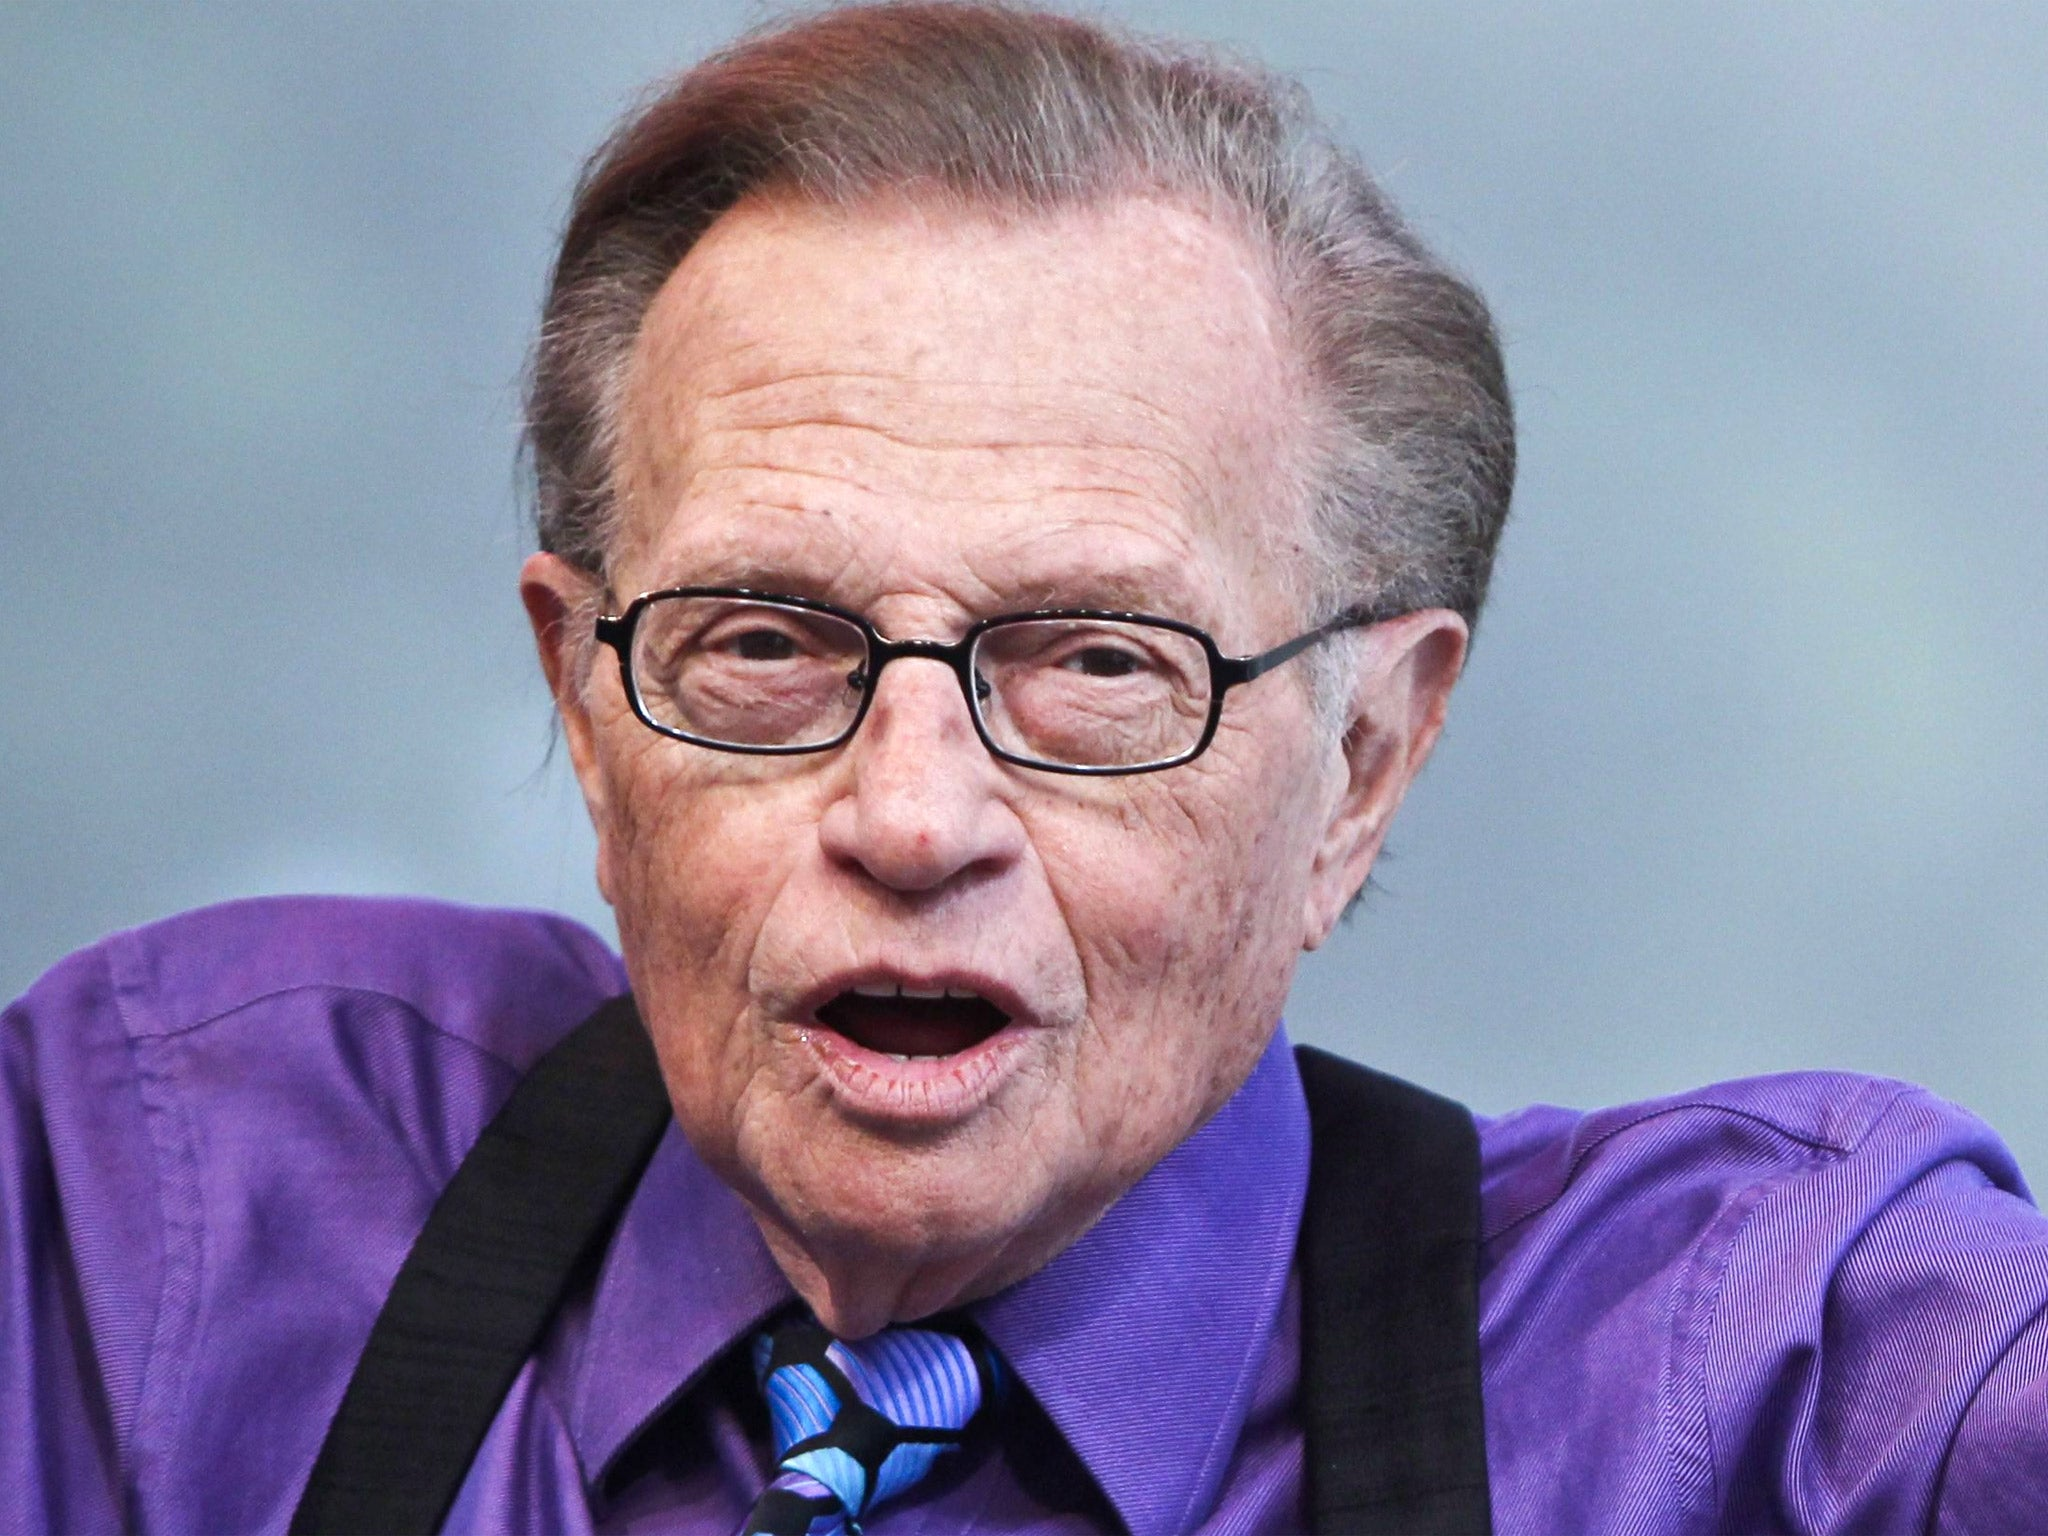 Larry King was placed in coma after stroke and 'doesn't remember most of March'